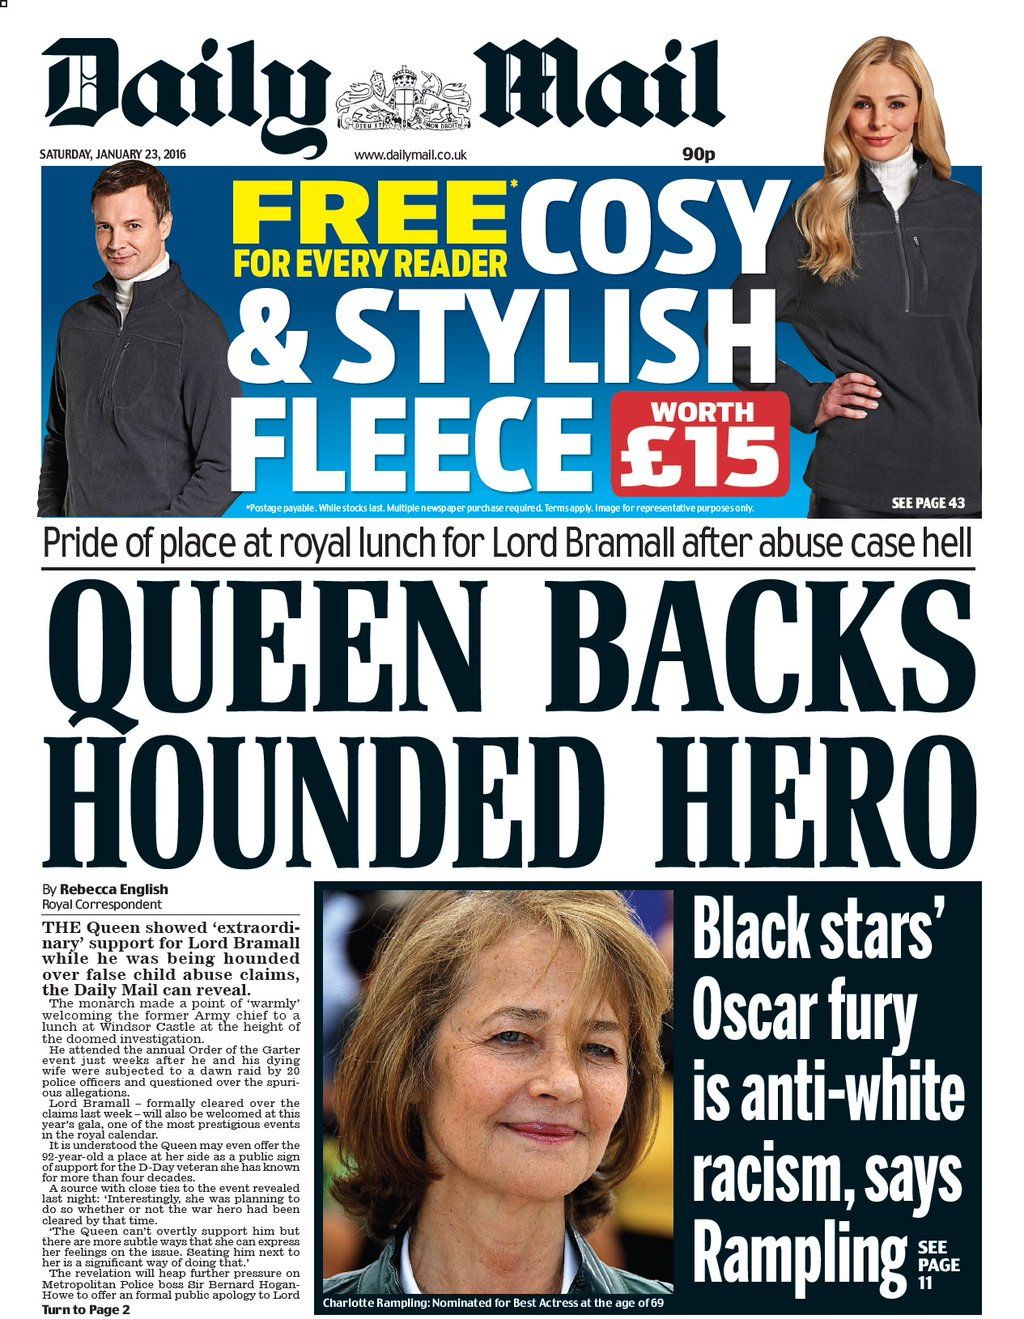 Saturday's Daily Mail front page: Queen backs hounded hero #tomorrowspaperstoday #bbcpapers https://t.co/MquIuyizsZ